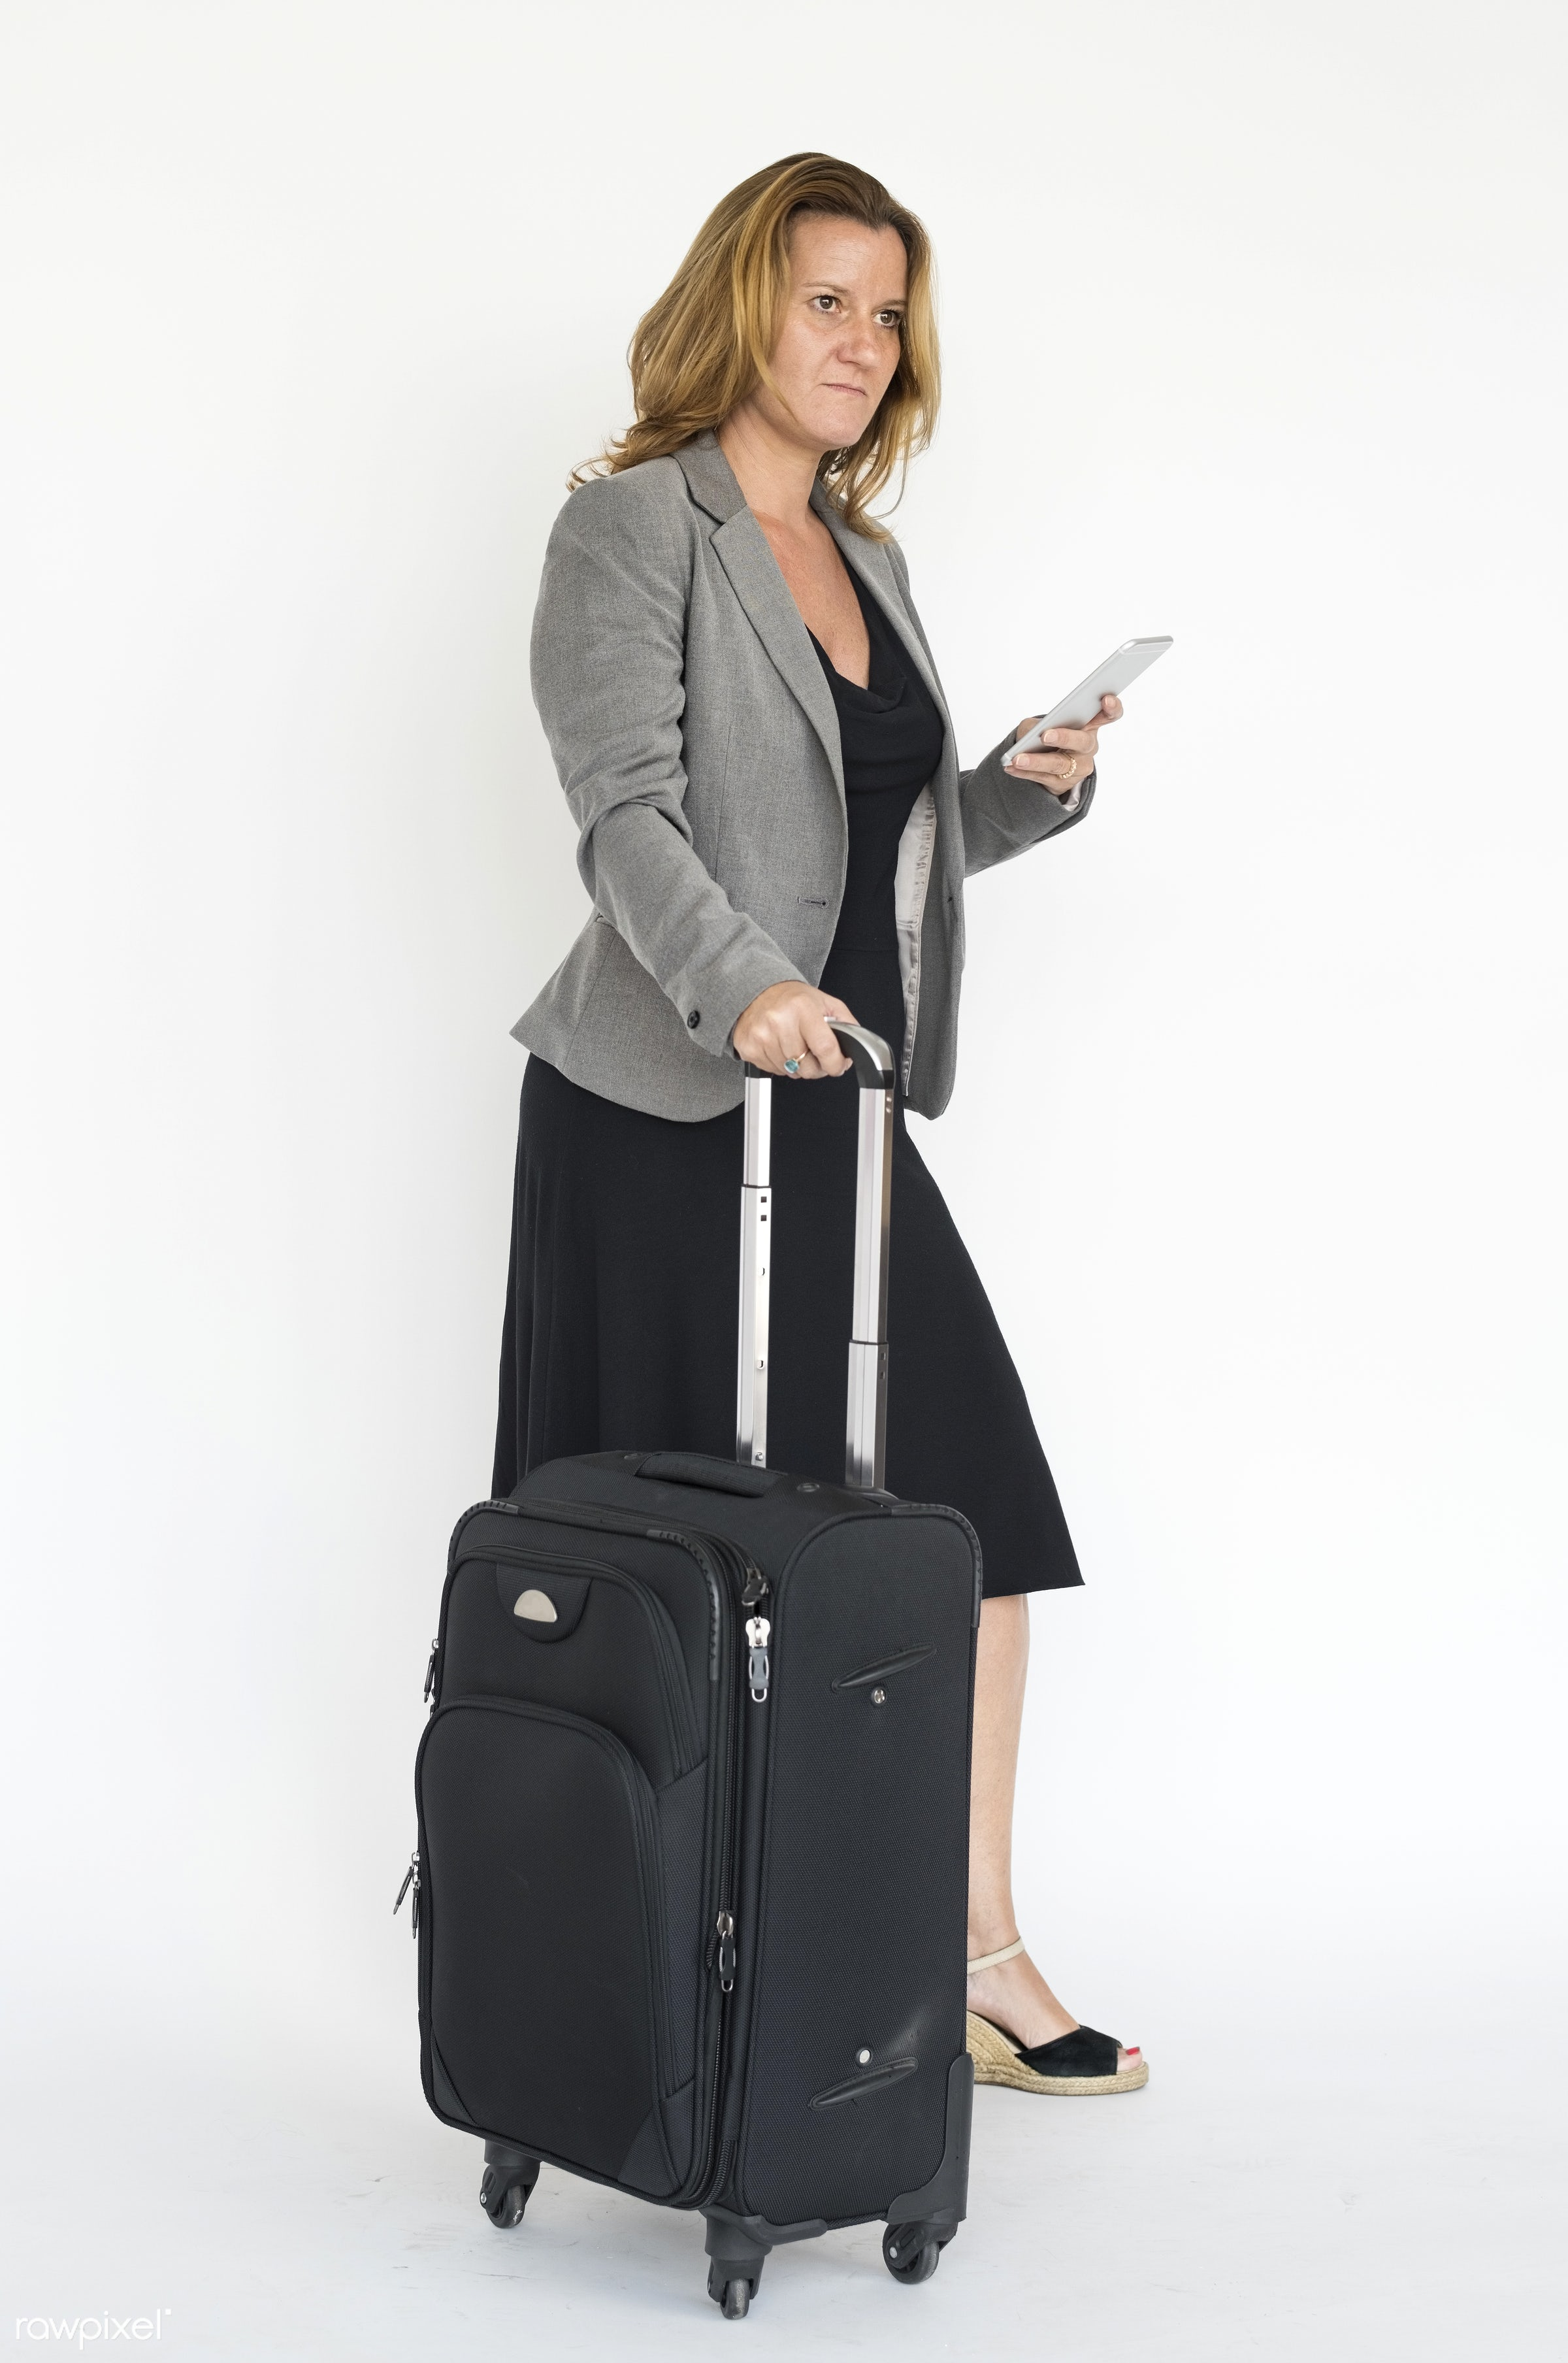 expression, studio, model, person, full length, isolated on white, luggage, people, race, caucasian, style, woman, lifestyle...